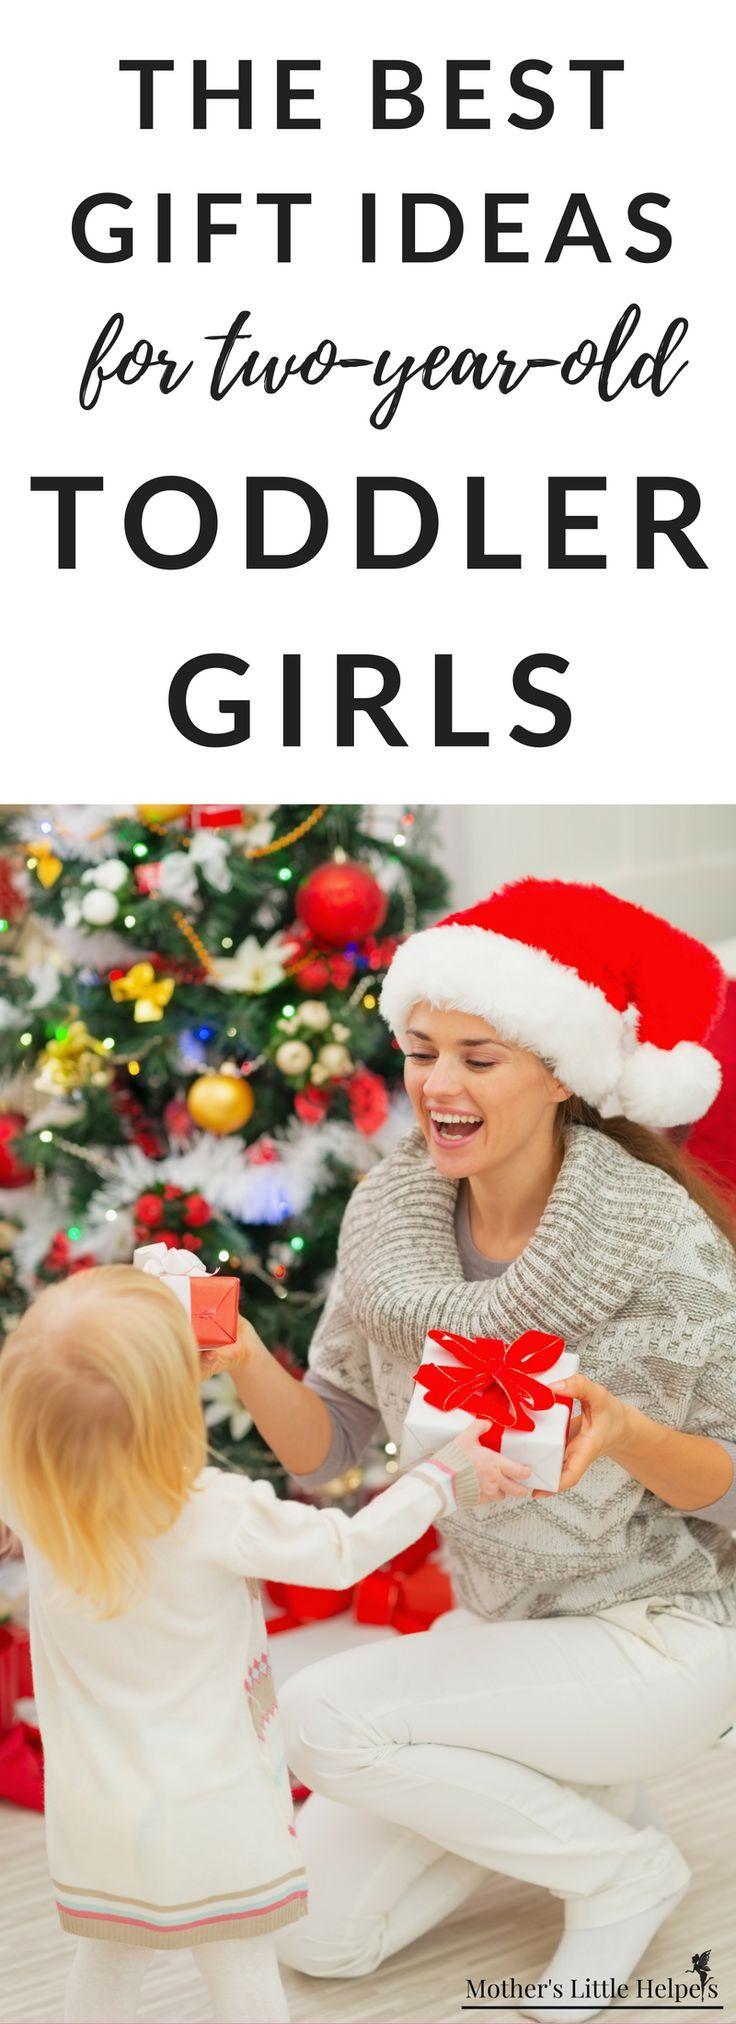 Christmas 2021 Todler Gift Ideas The Best Gifts For Toddler Girl The Best Toys For Two Year Old Girls April 2021 Toddler Girl Gifts Toddler Gifts Best Toddler Gifts